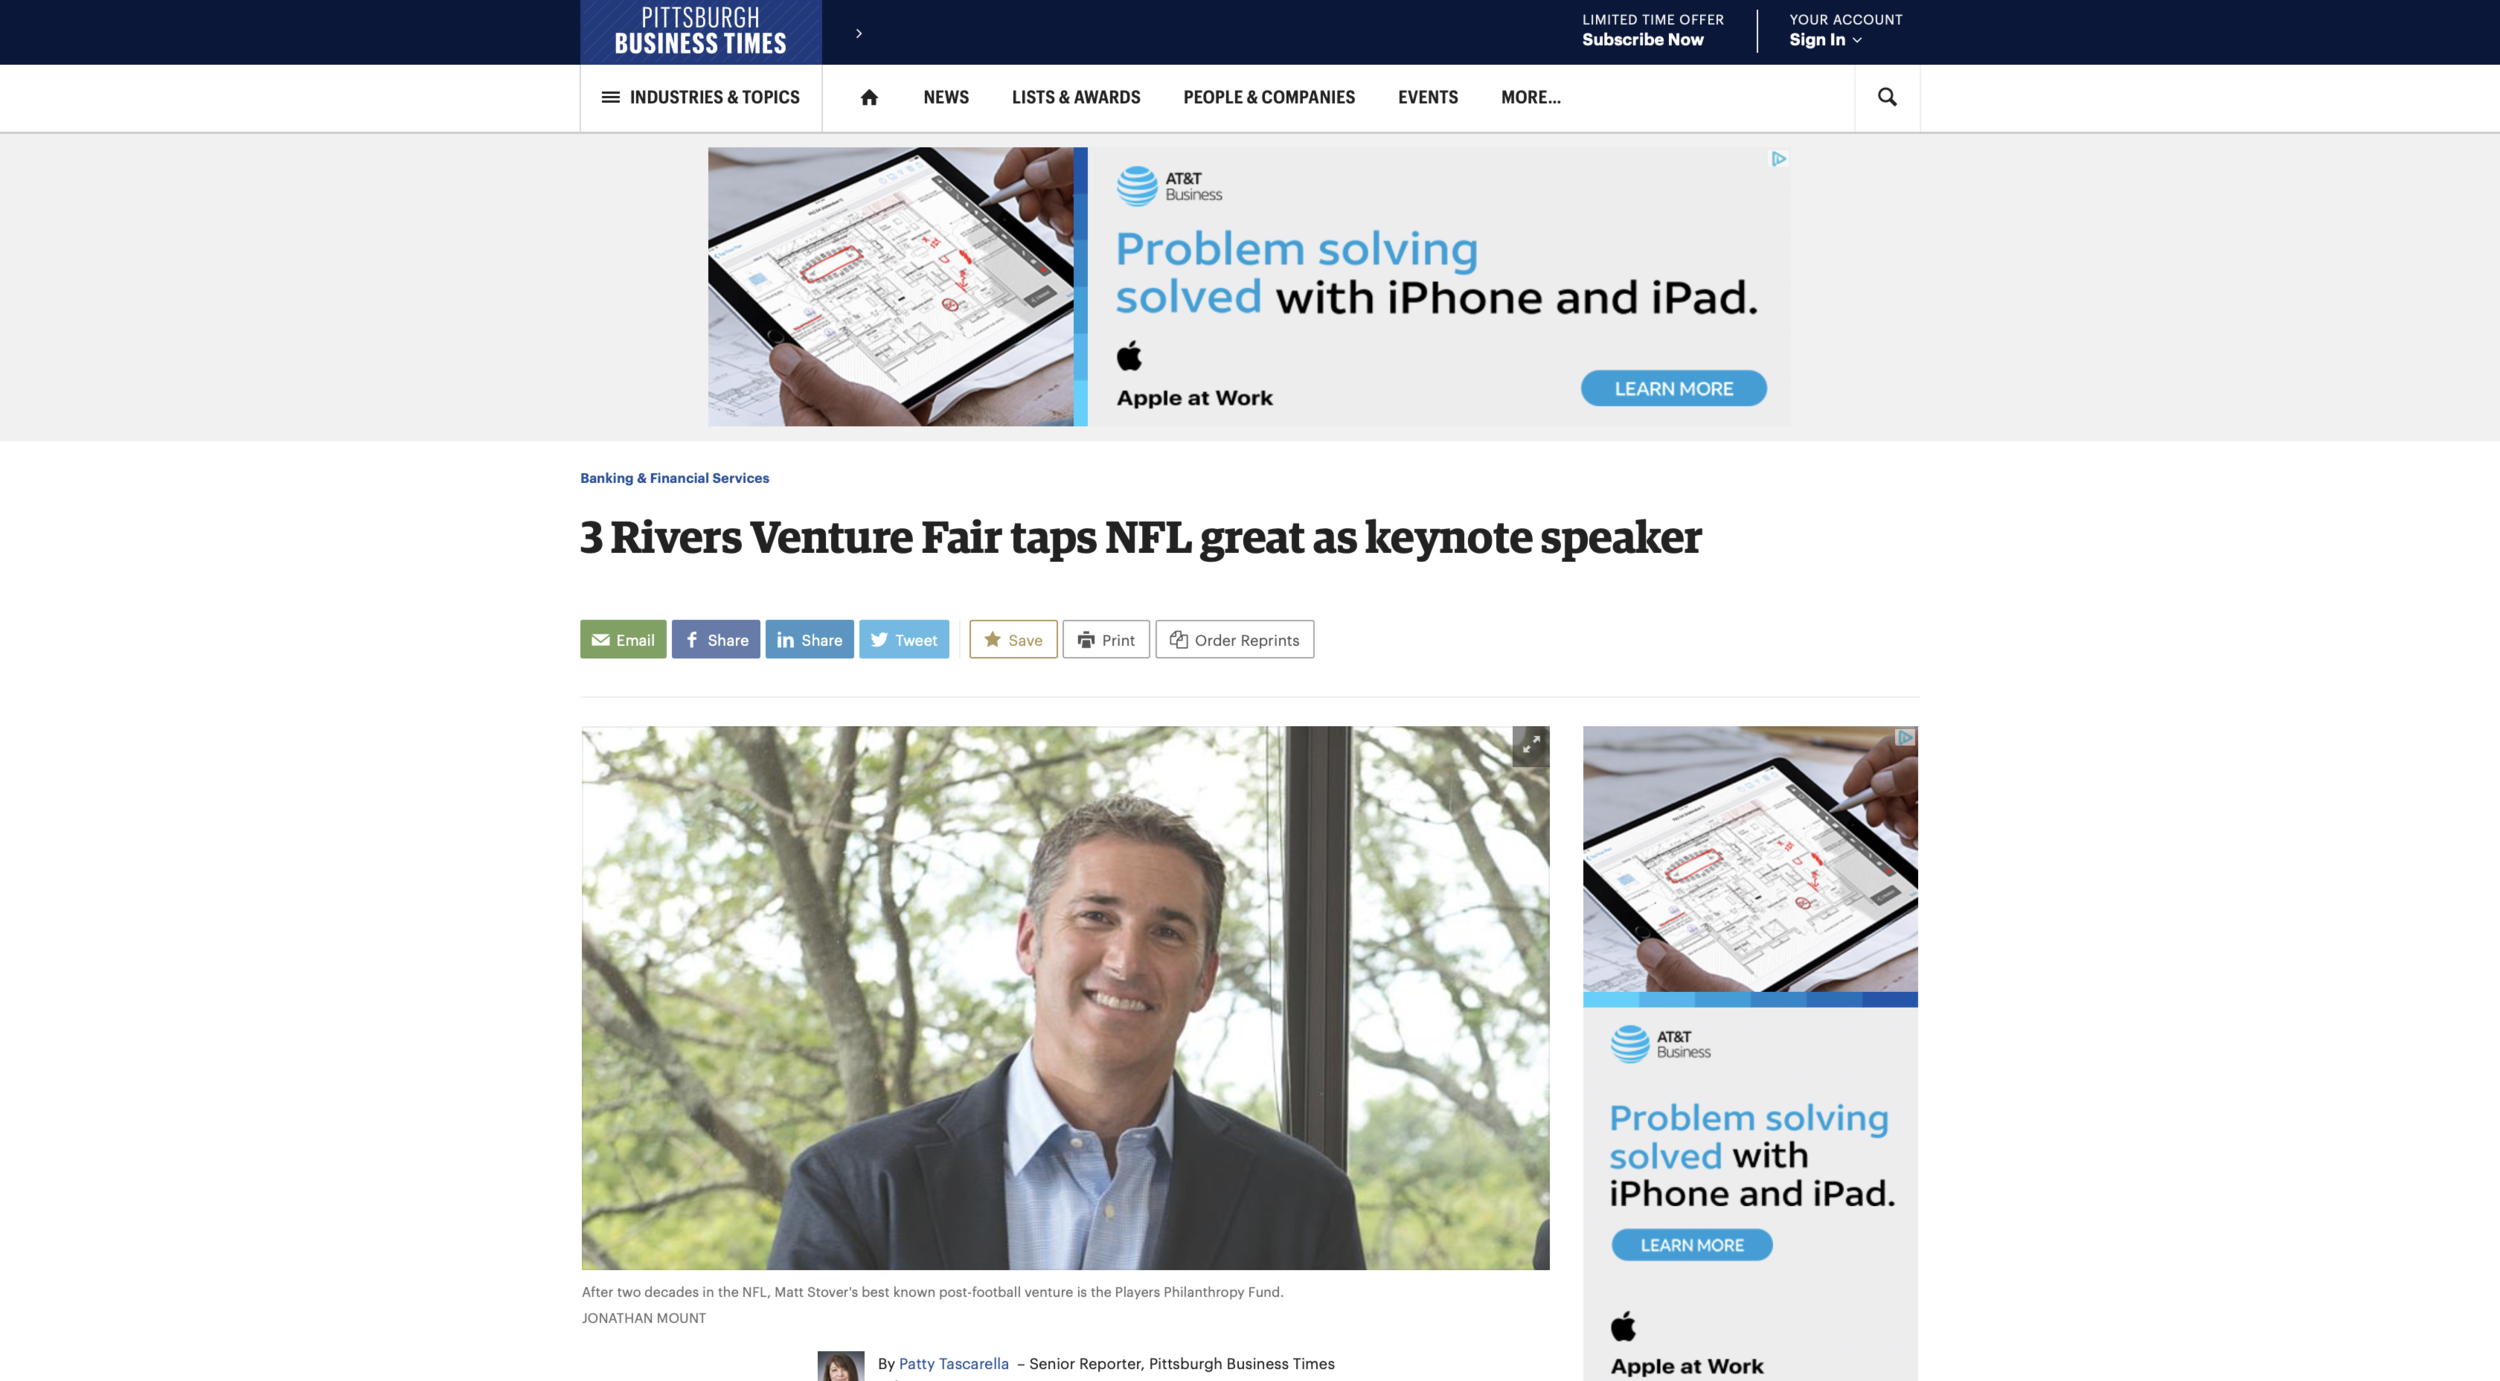 2019 Pittsburgh Business Times Stover 3RVF.png